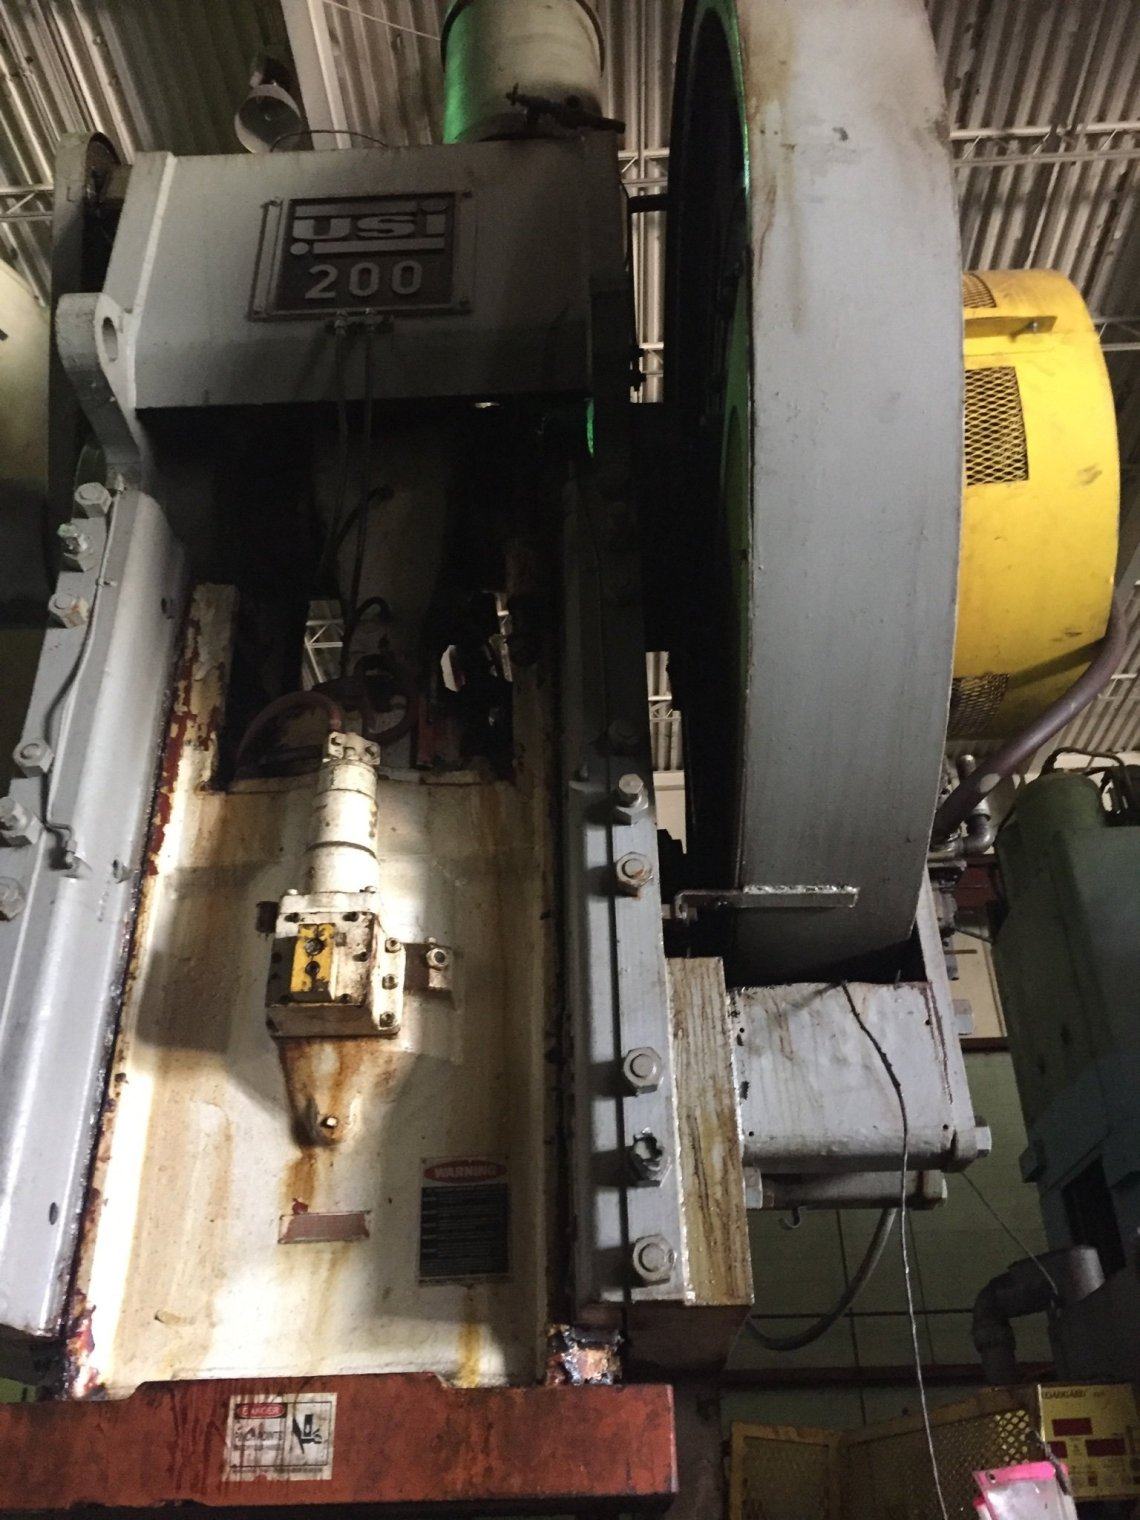 1 – USED 200 TON CLEARING ALL STEEL OBI PRESS